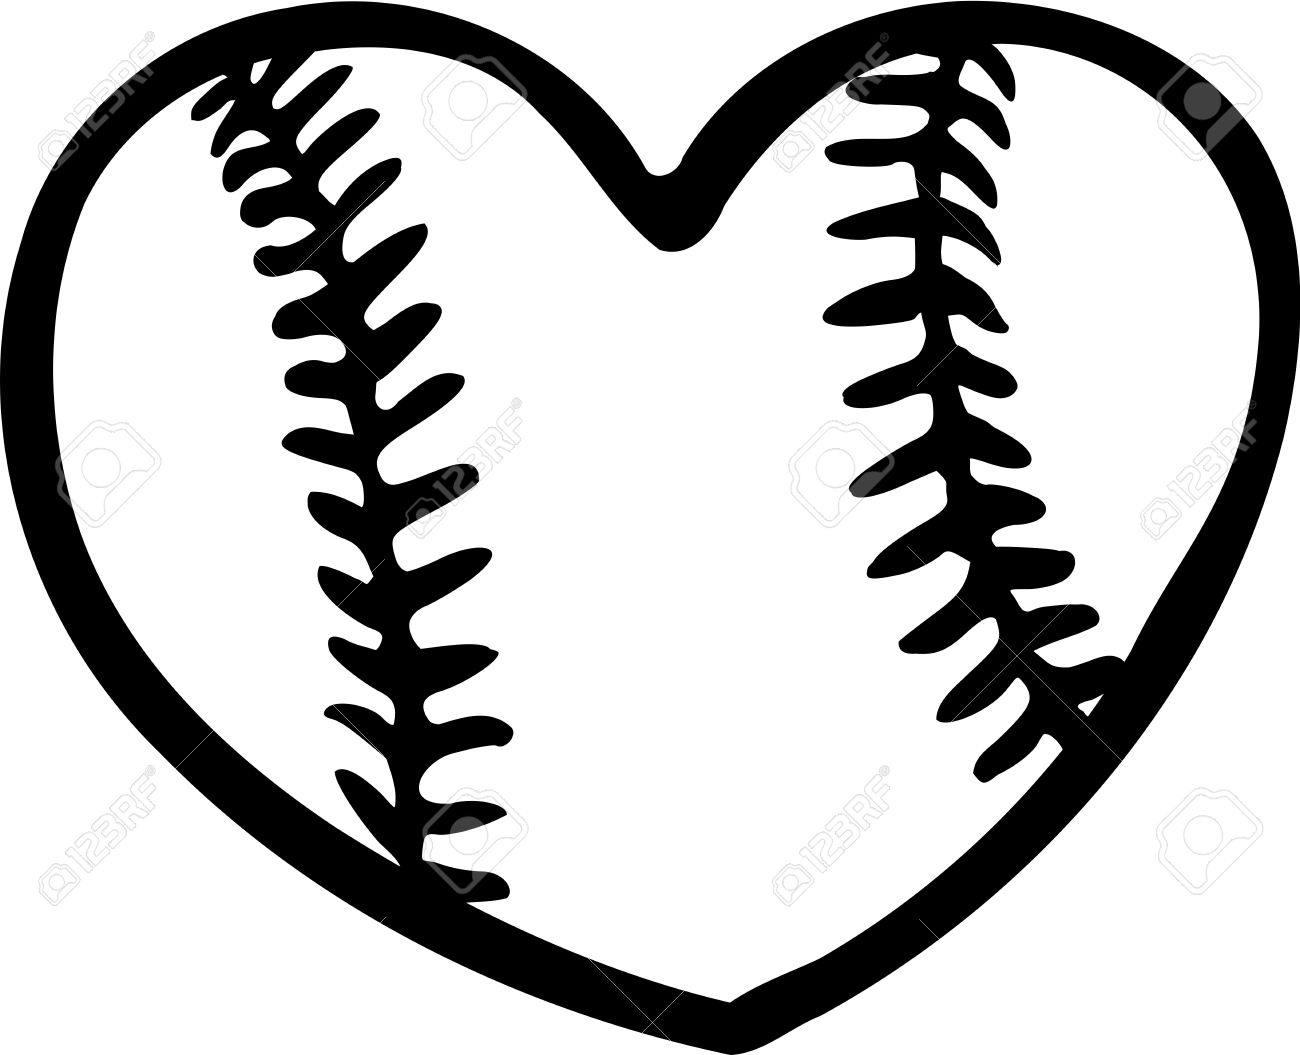 Baseball Heart Clipart Black And White.